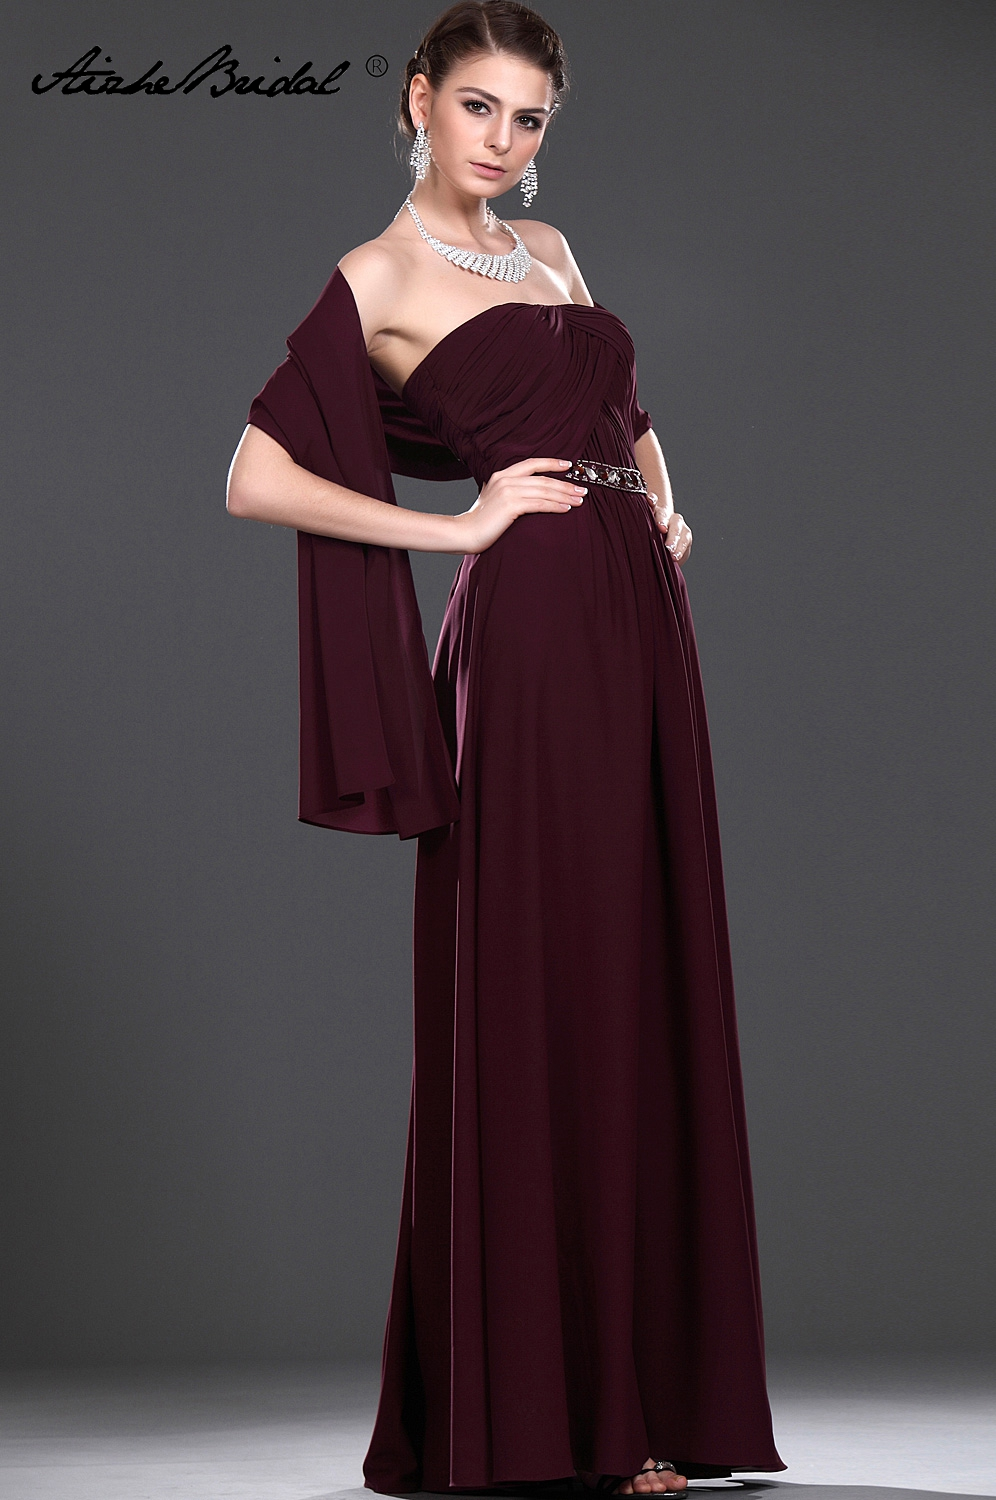 Wedding Party Dress Long Mother Of The Groom Dresses Strapless Burgundy Chiffon Mother Of The Bride Dress With Shawl